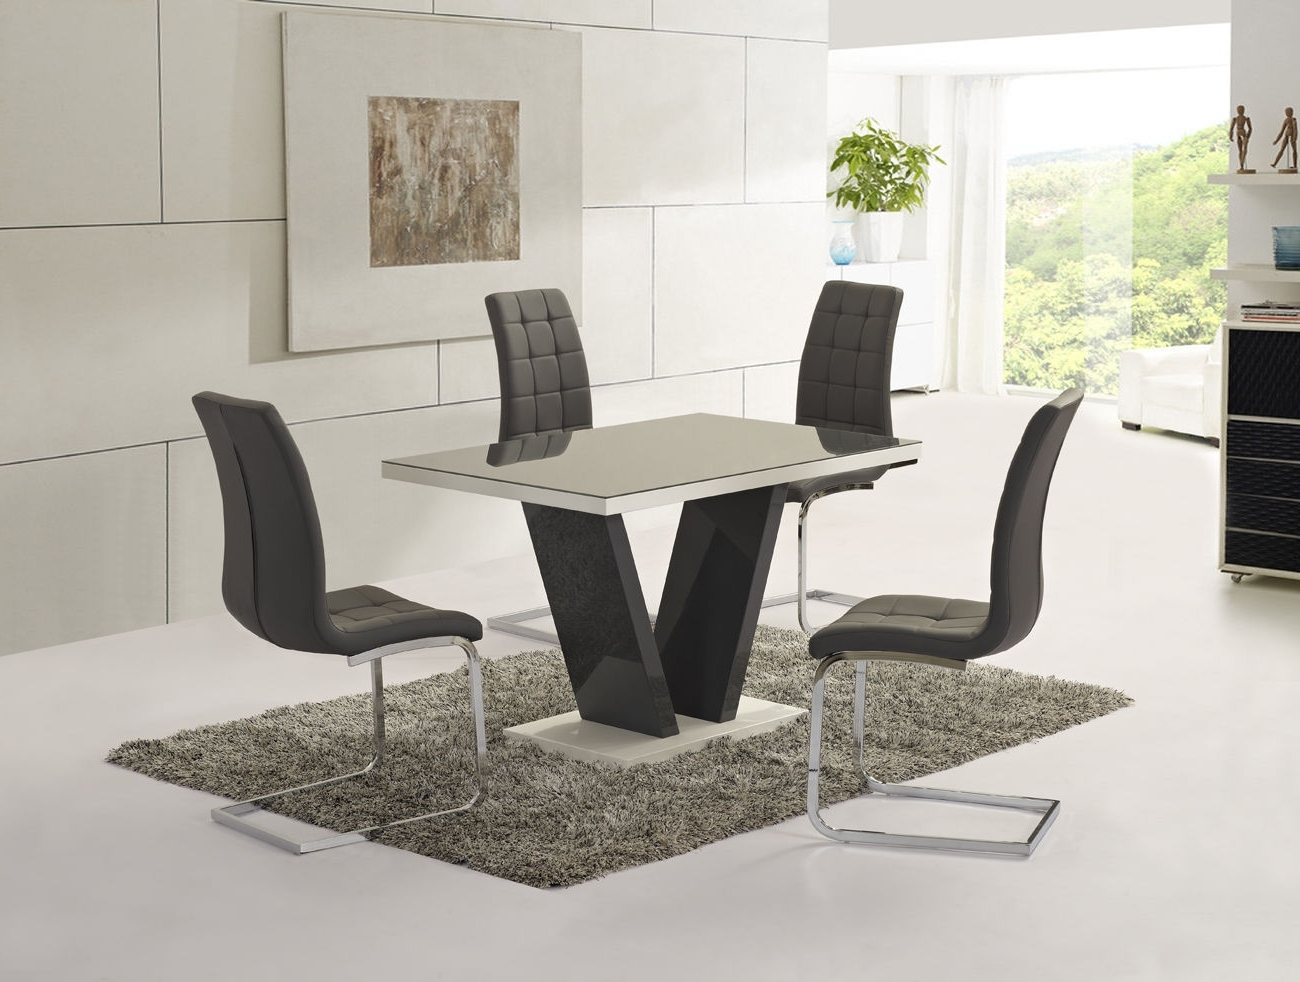 Most Recently Released Black High Gloss Dining Chairs Pertaining To Ga Vico Gloss Grey Glass Top Designer 160Cm Dining Set – 4 6 Grey (View 5 of 25)